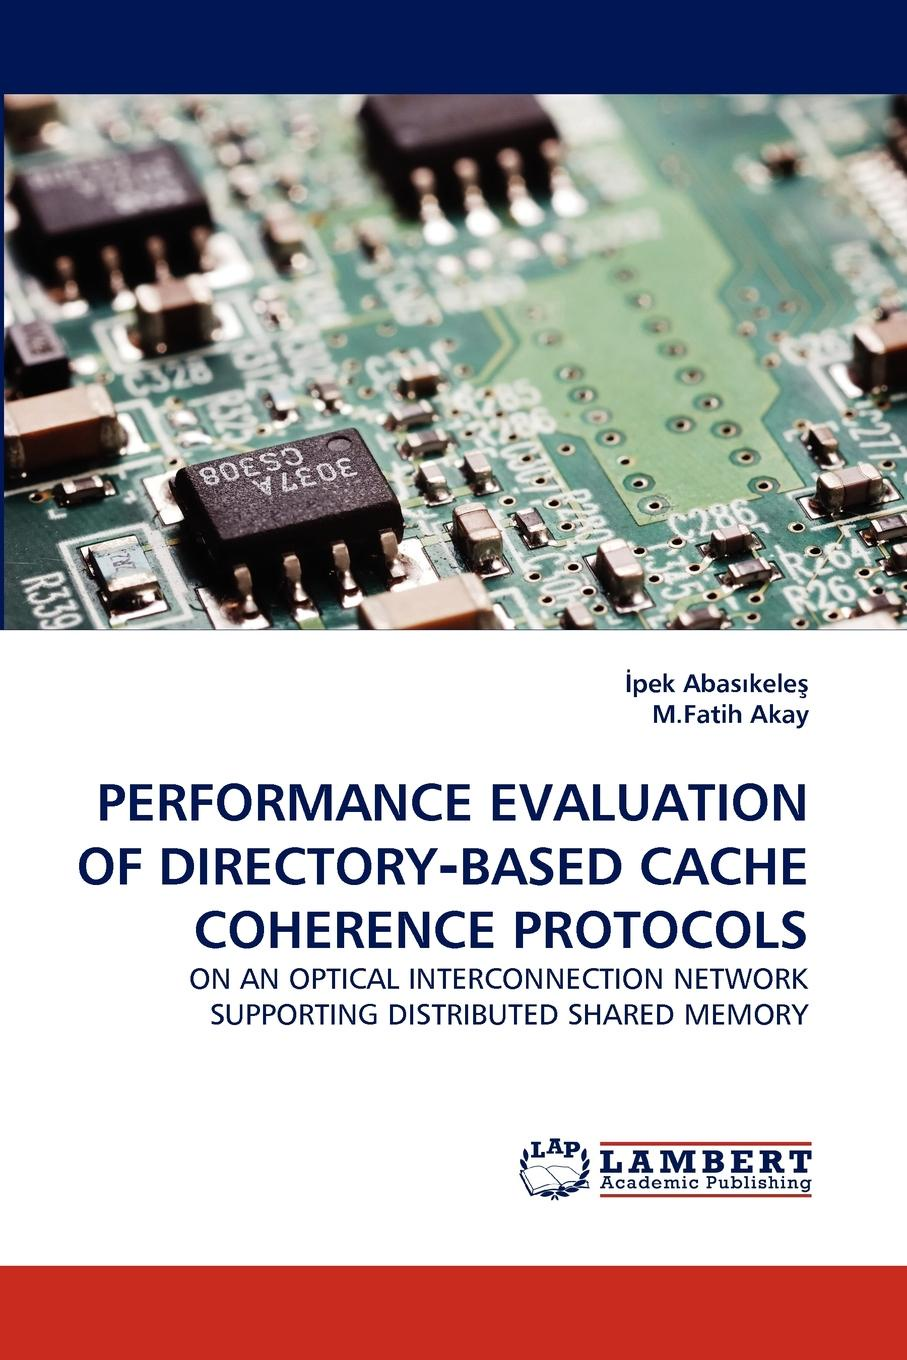 İpek Abasıkeleş, M.Fatih Akay PERFORMANCE EVALUATION OF DIRECTORY-BASED CACHE COHERENCE PROTOCOLS